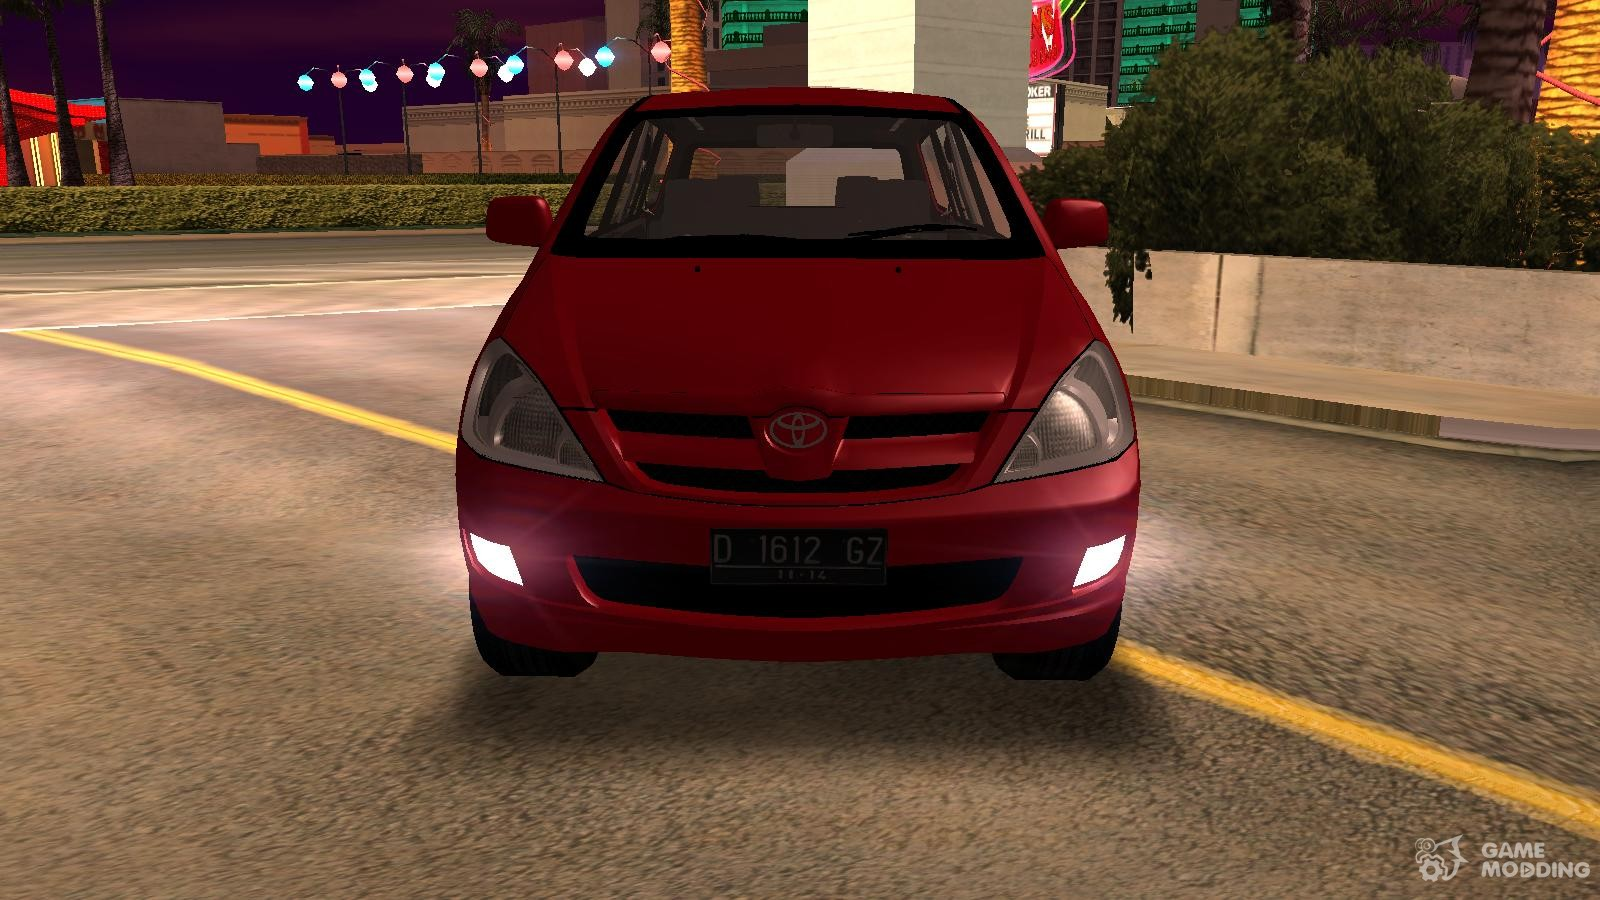 mod all new kijang innova ets2 2.0 g m/t lux toyota for gta san andreas